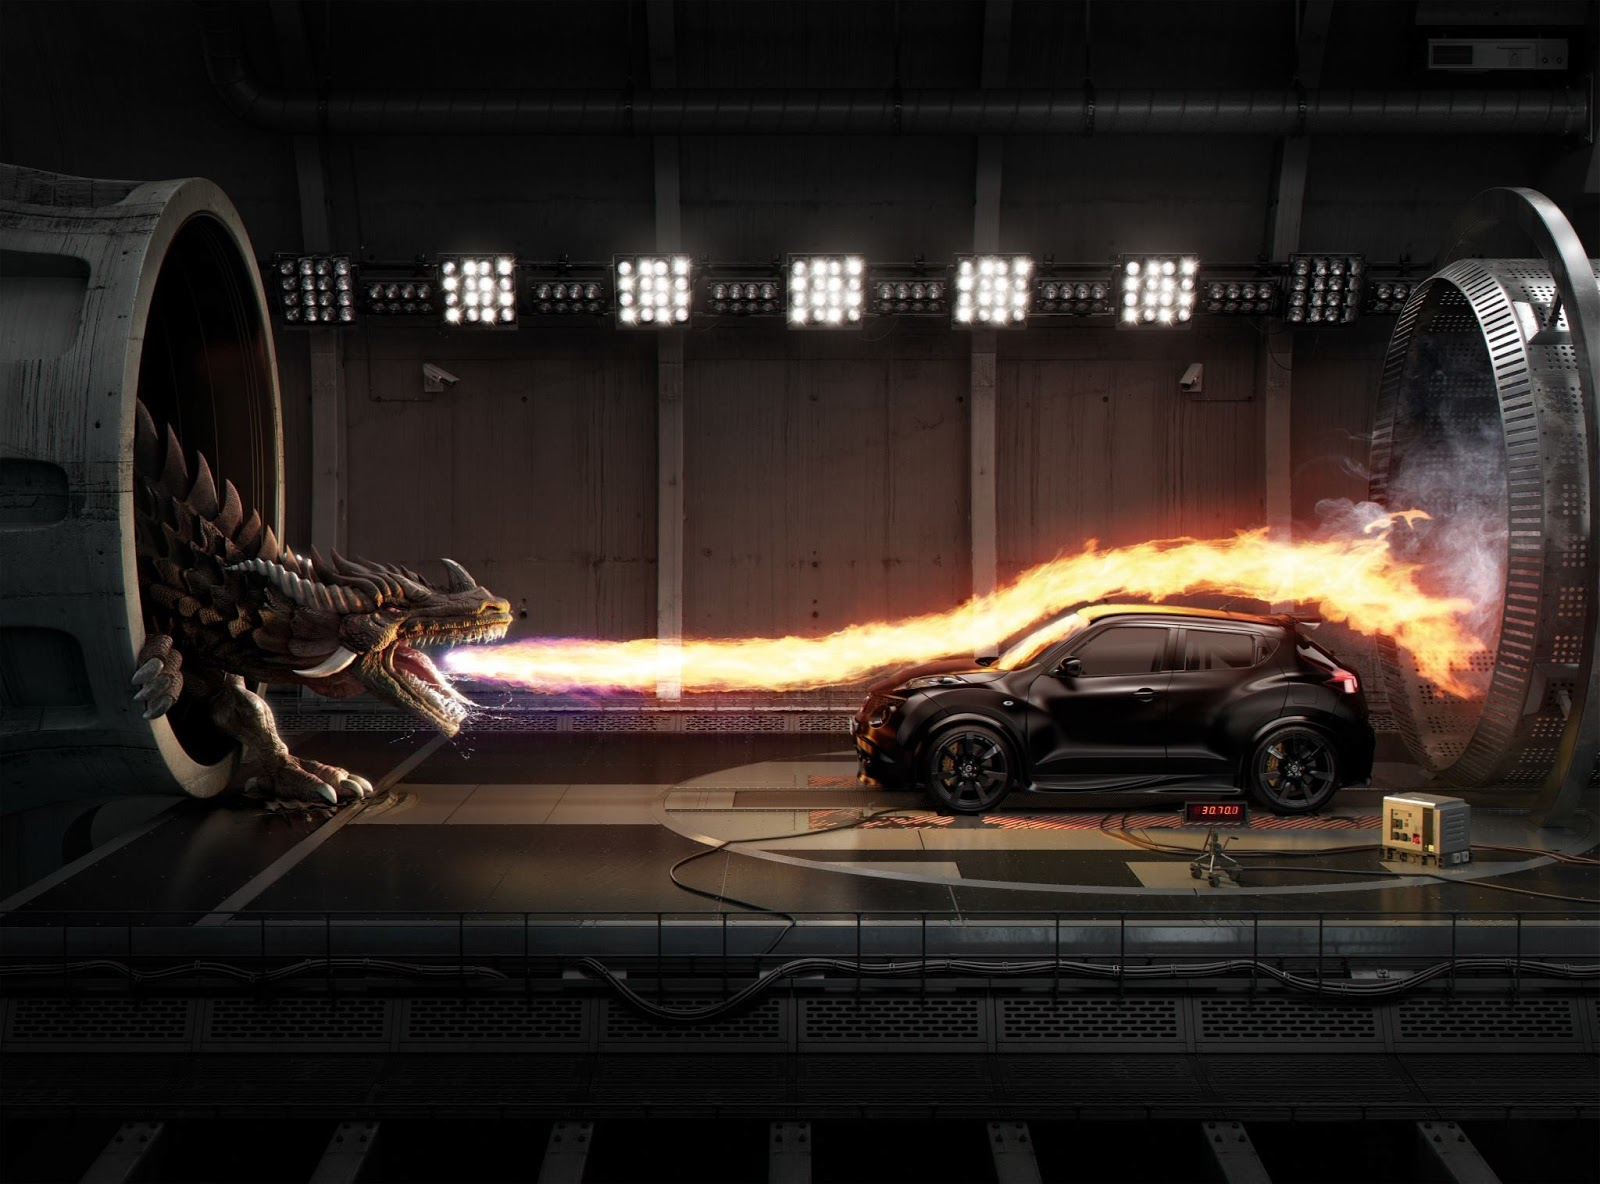 Fantasy dragon dragons car fire wallpaper 1600x1184 122748 1600x1184